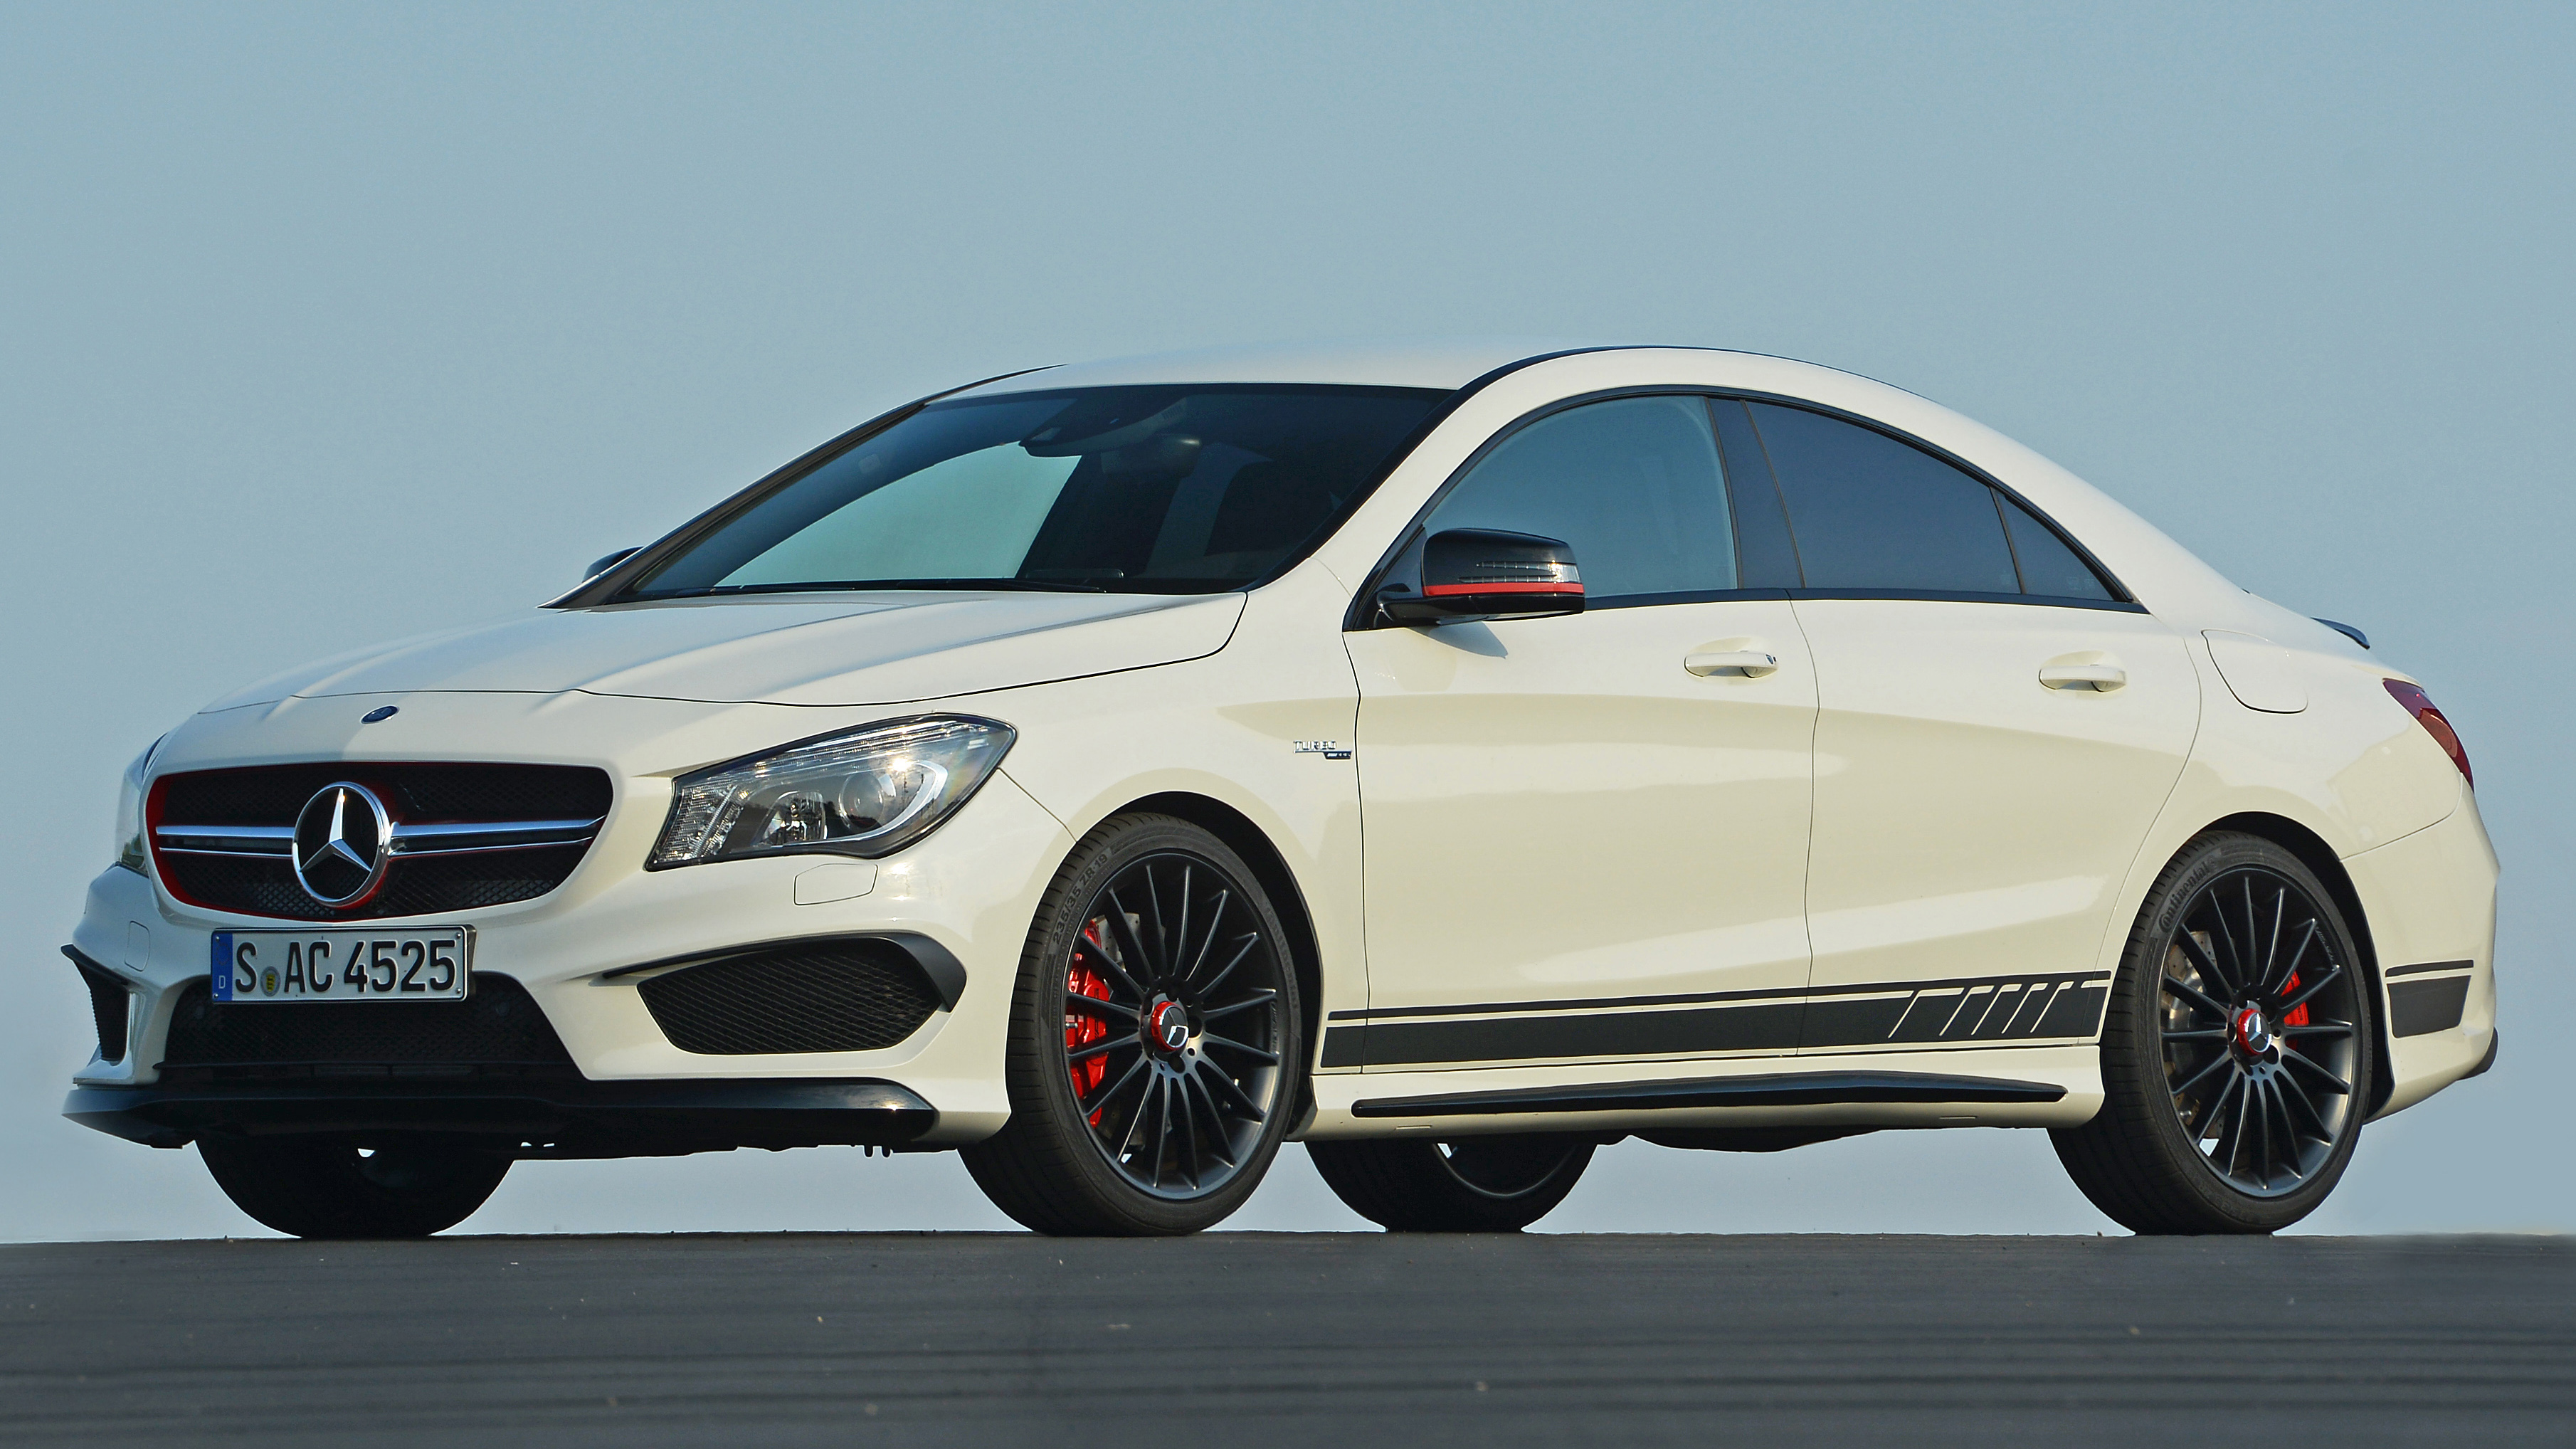 Mercedes benz cla 45 amg now available rm393k image 246749 for Mercedes benz amg cla 45